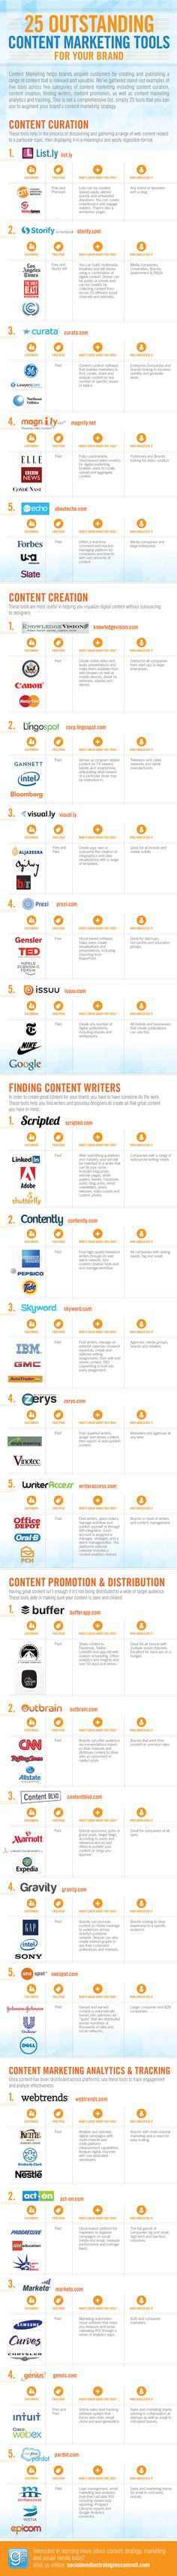 25 Content Marketing Tools (because we weren't already using half of them)